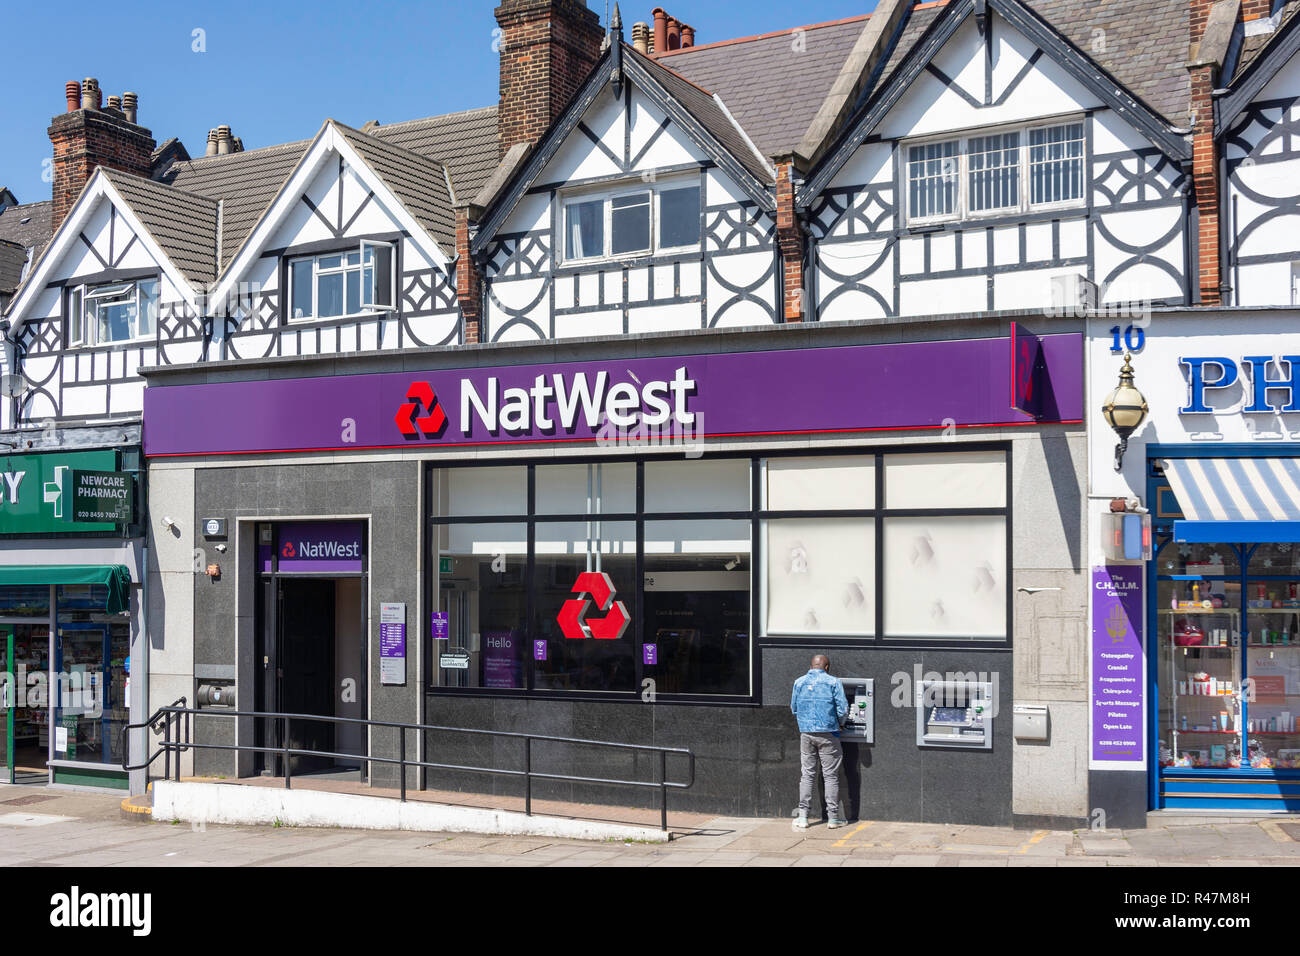 NatWest Bank, Station Approach, Willesden Green, Willesden, London Borough of Brent, Greater London, England, United Kingdom - Stock Image